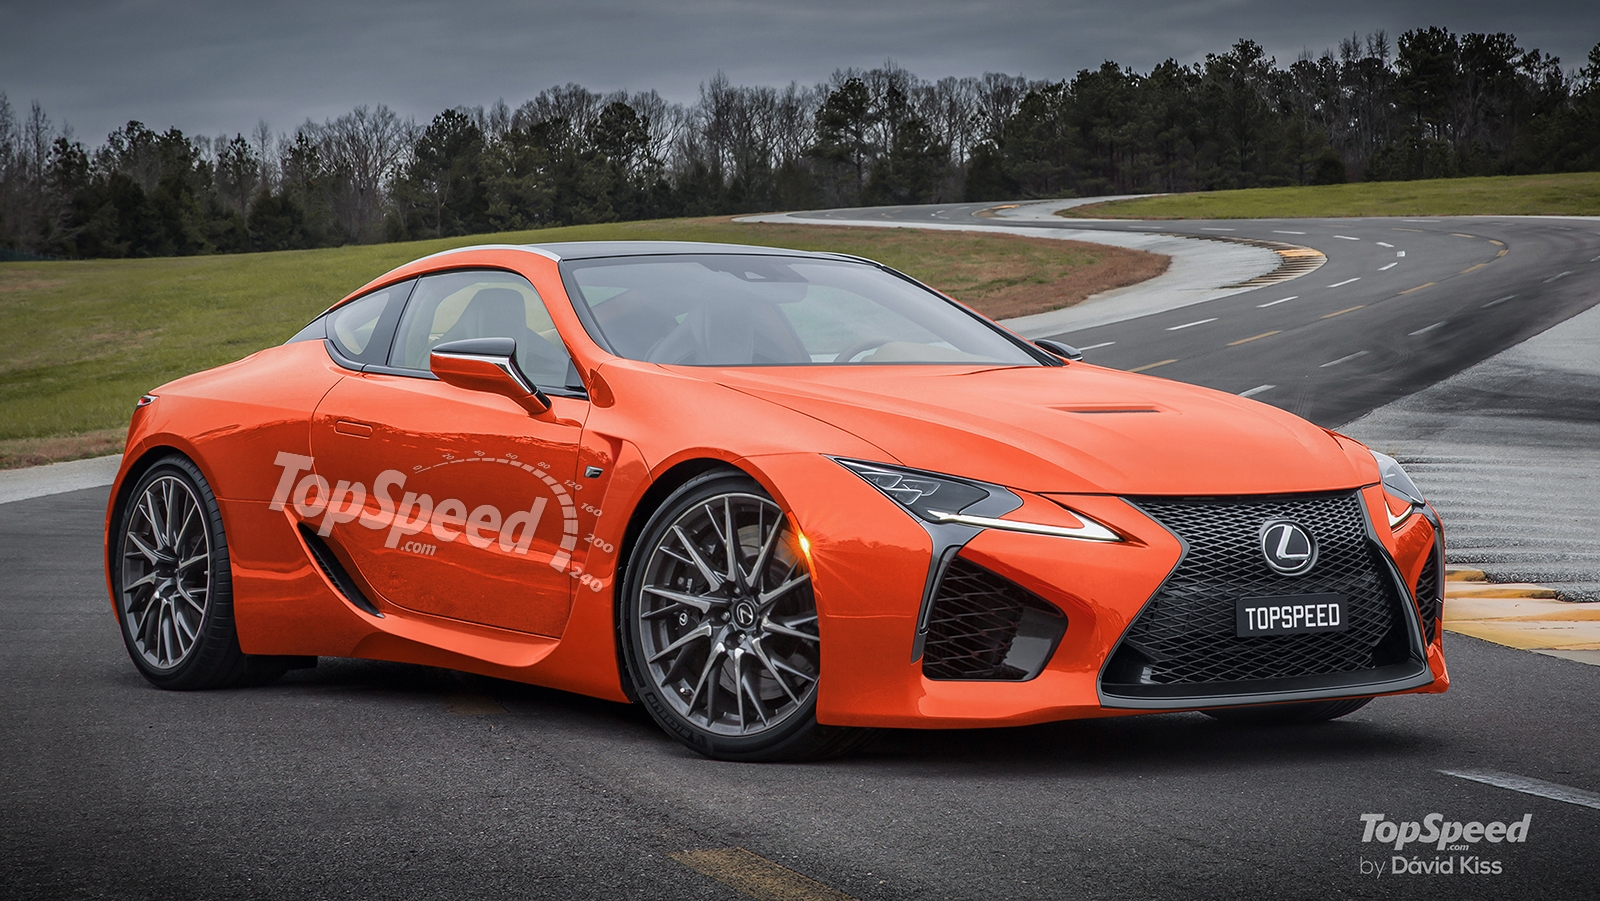 2020 Lexus LC F Pictures, Photos, Wallpapers. | Top Speed